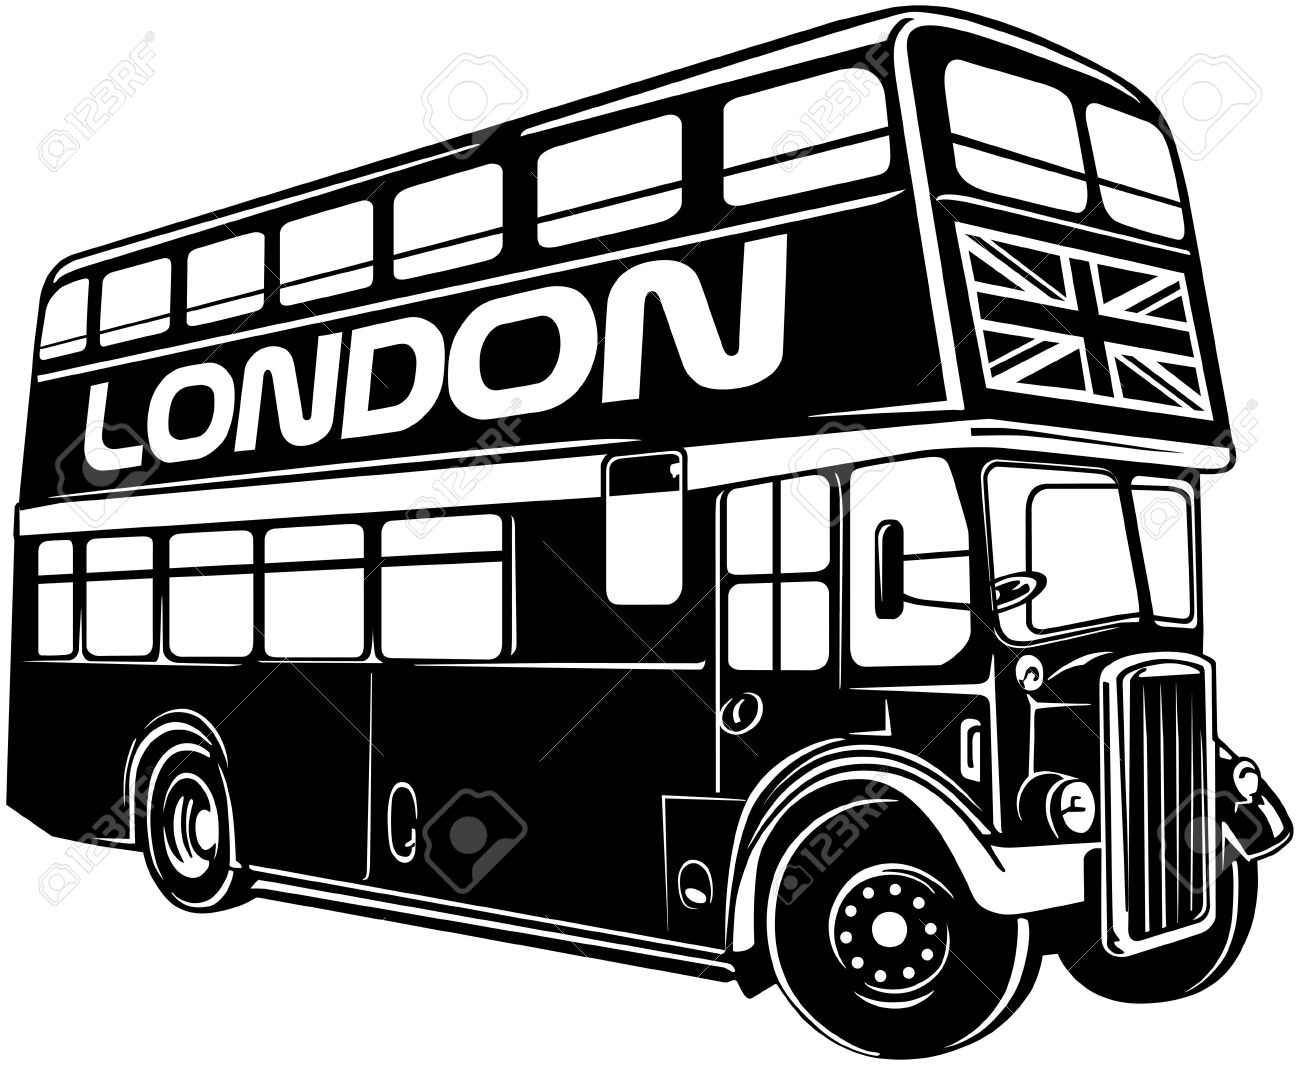 Double Decker Bus Royalty Free Cliparts, Vectors, And Stock.